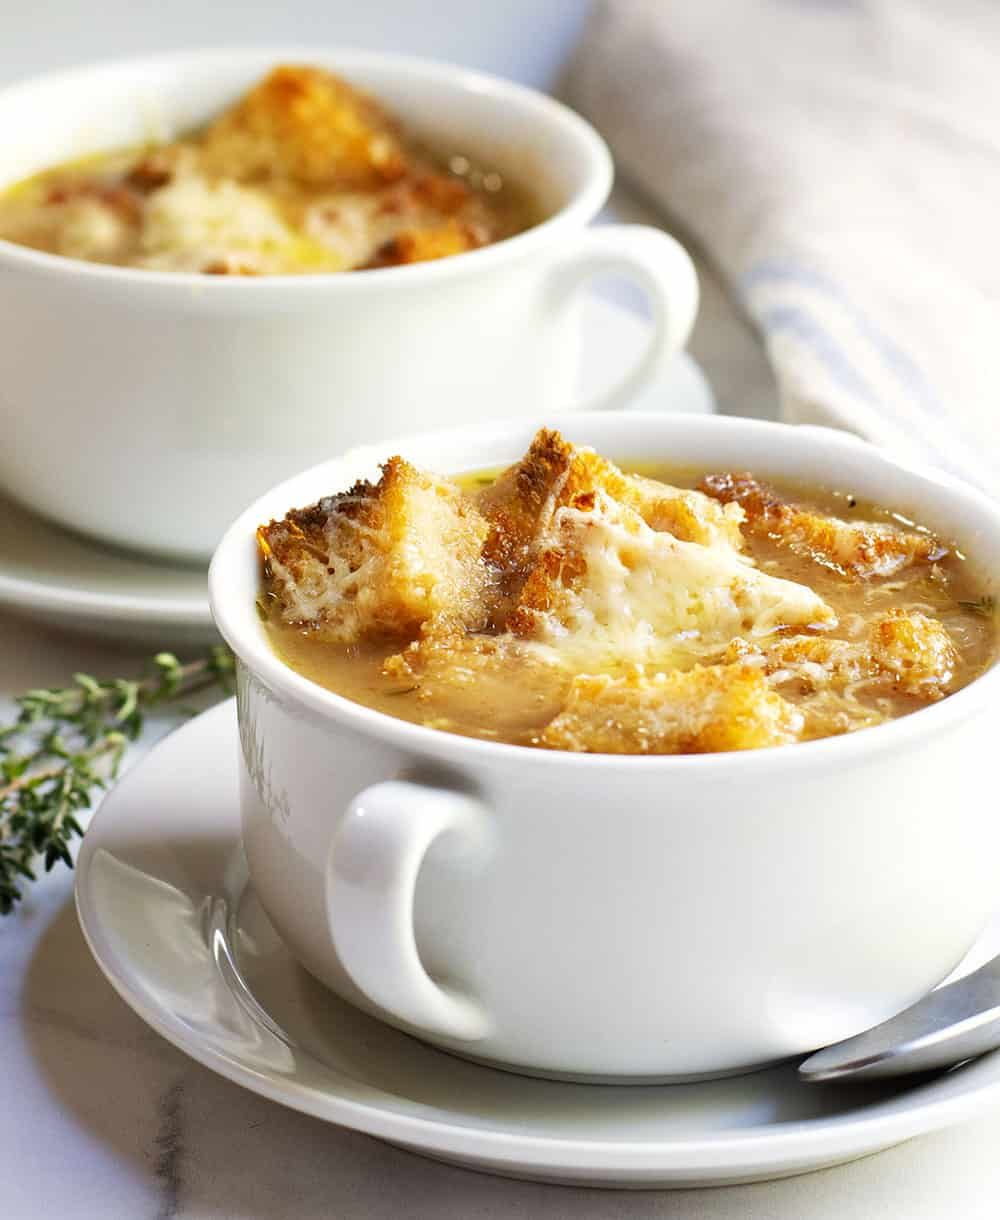 French Onion Soup Served In White Bowls French Onion Soup Recipe Onion Soup Recipes Classic French Onion Soup